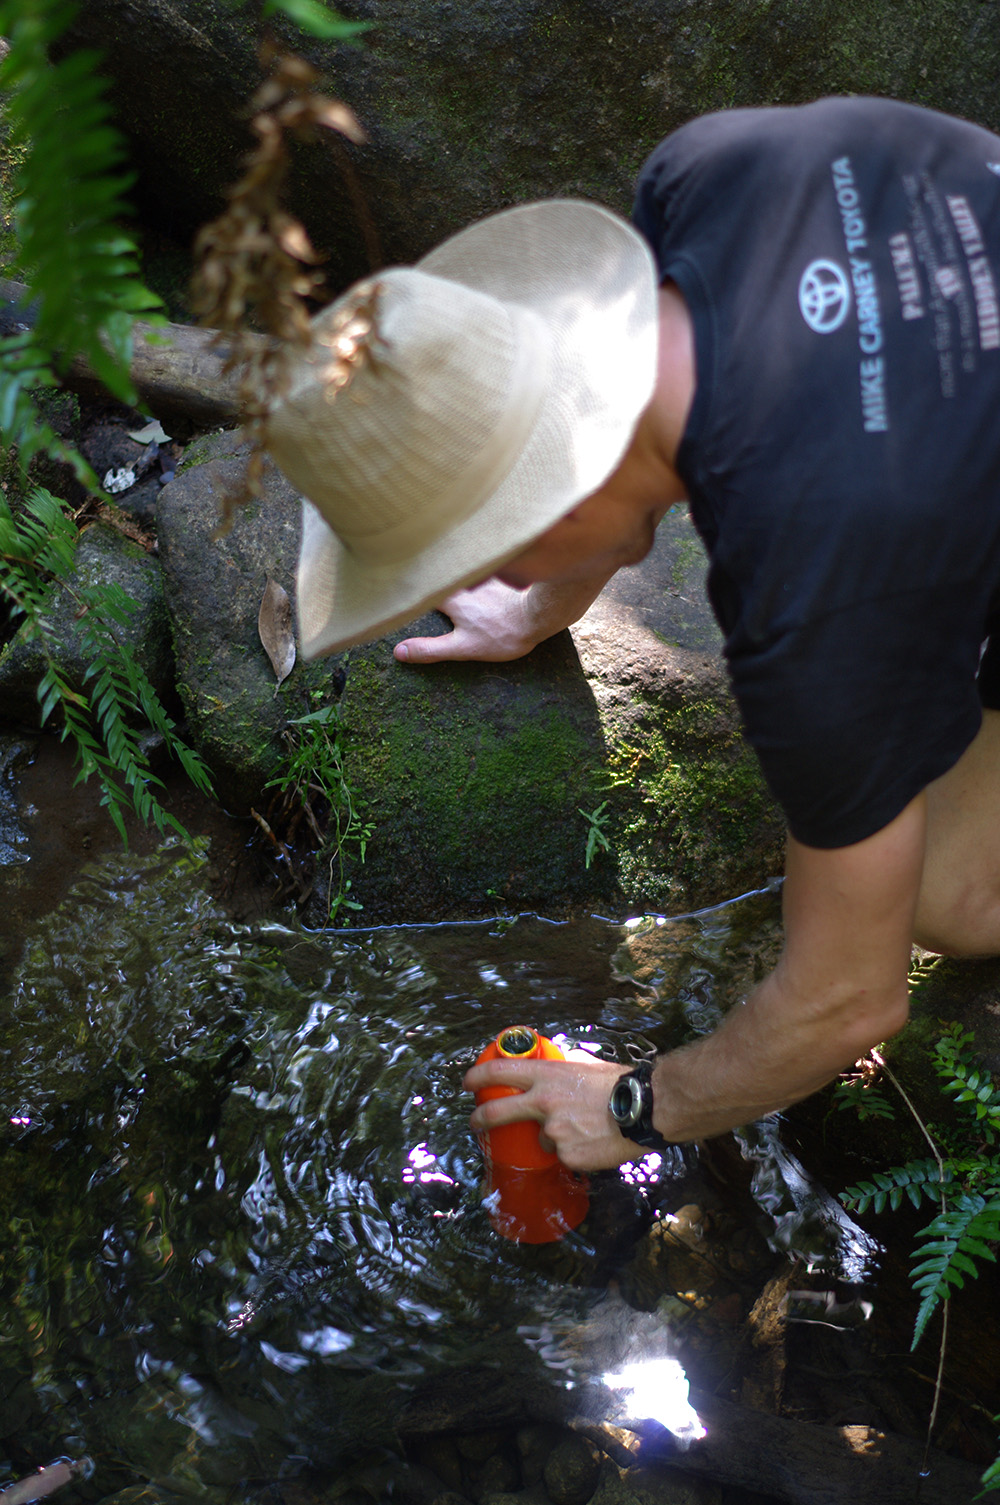 Collecting drinking water from a stream